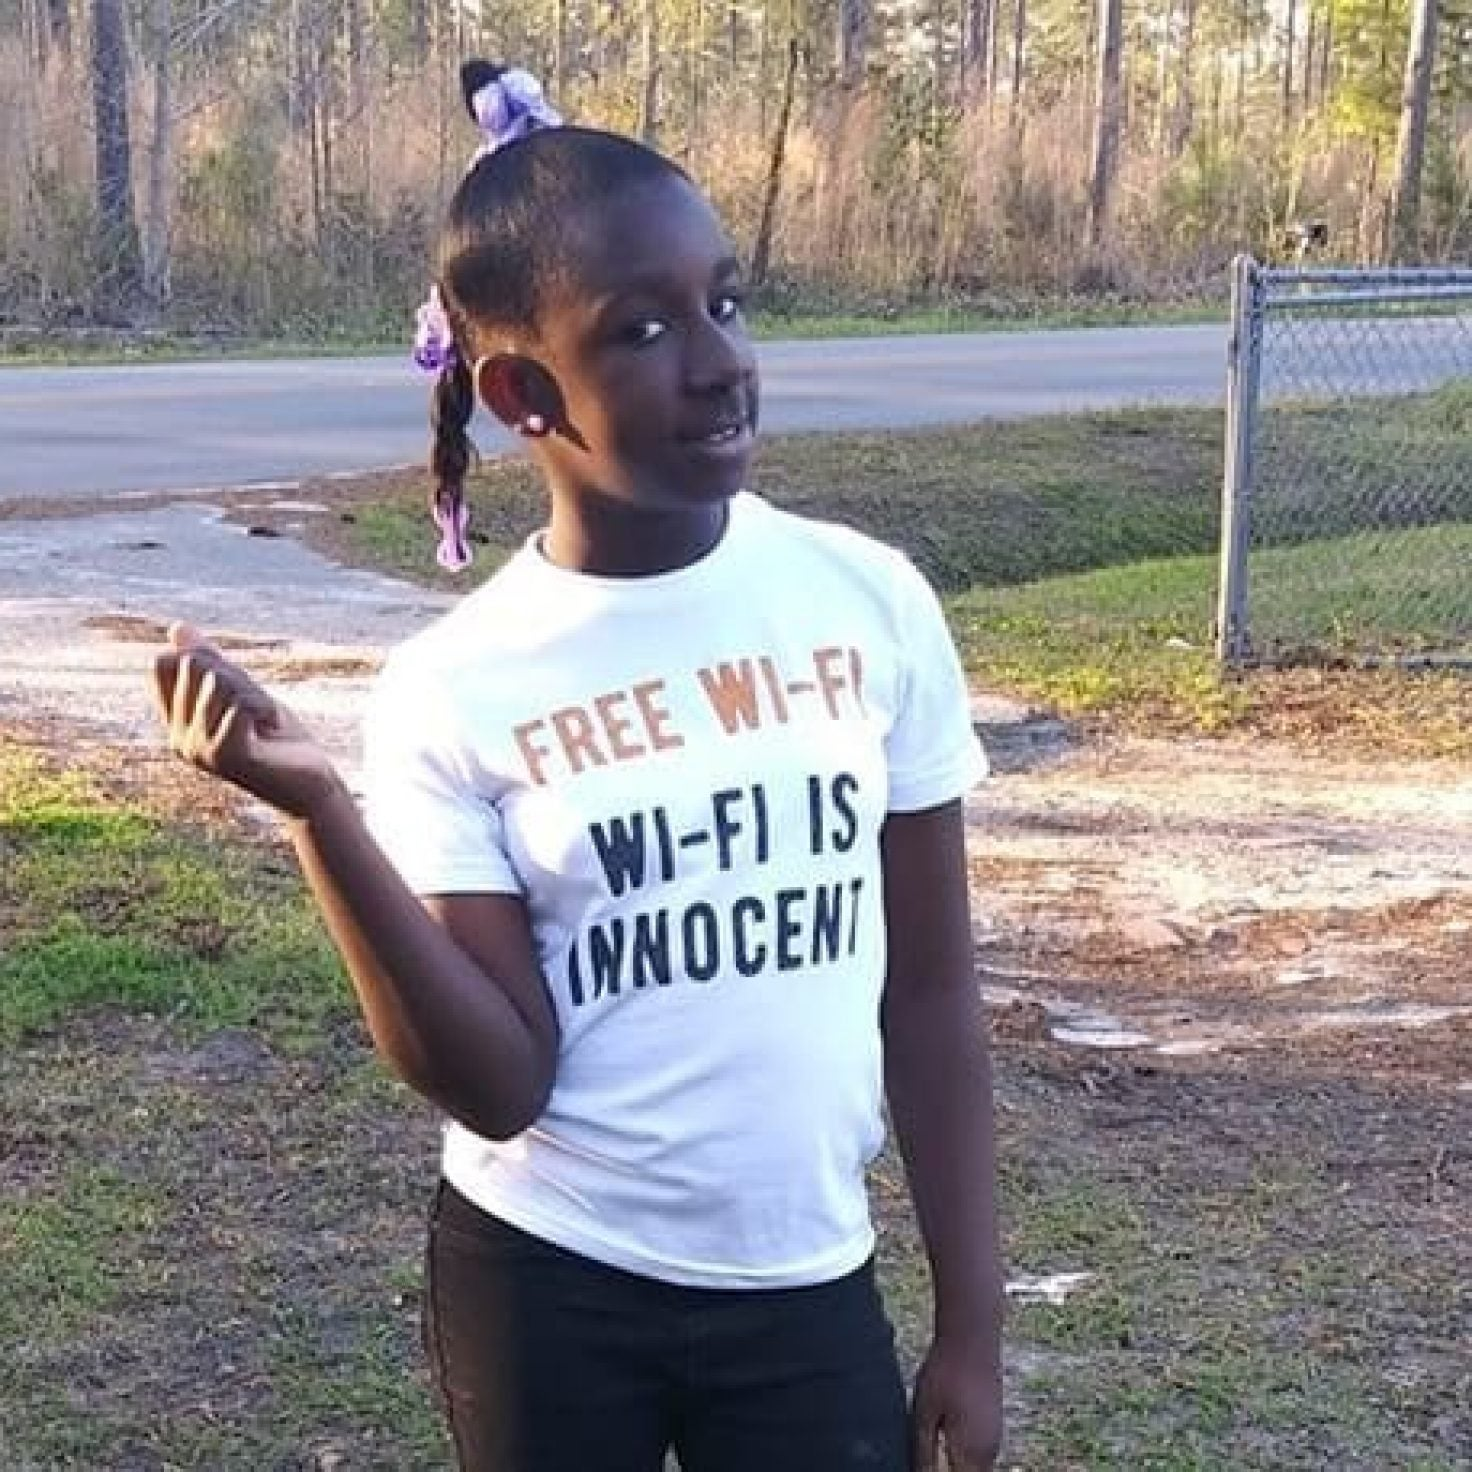 Mom Of 10-Year-Old Who Died After School Fight Said She Complained About Bullying 'Numerous Times'